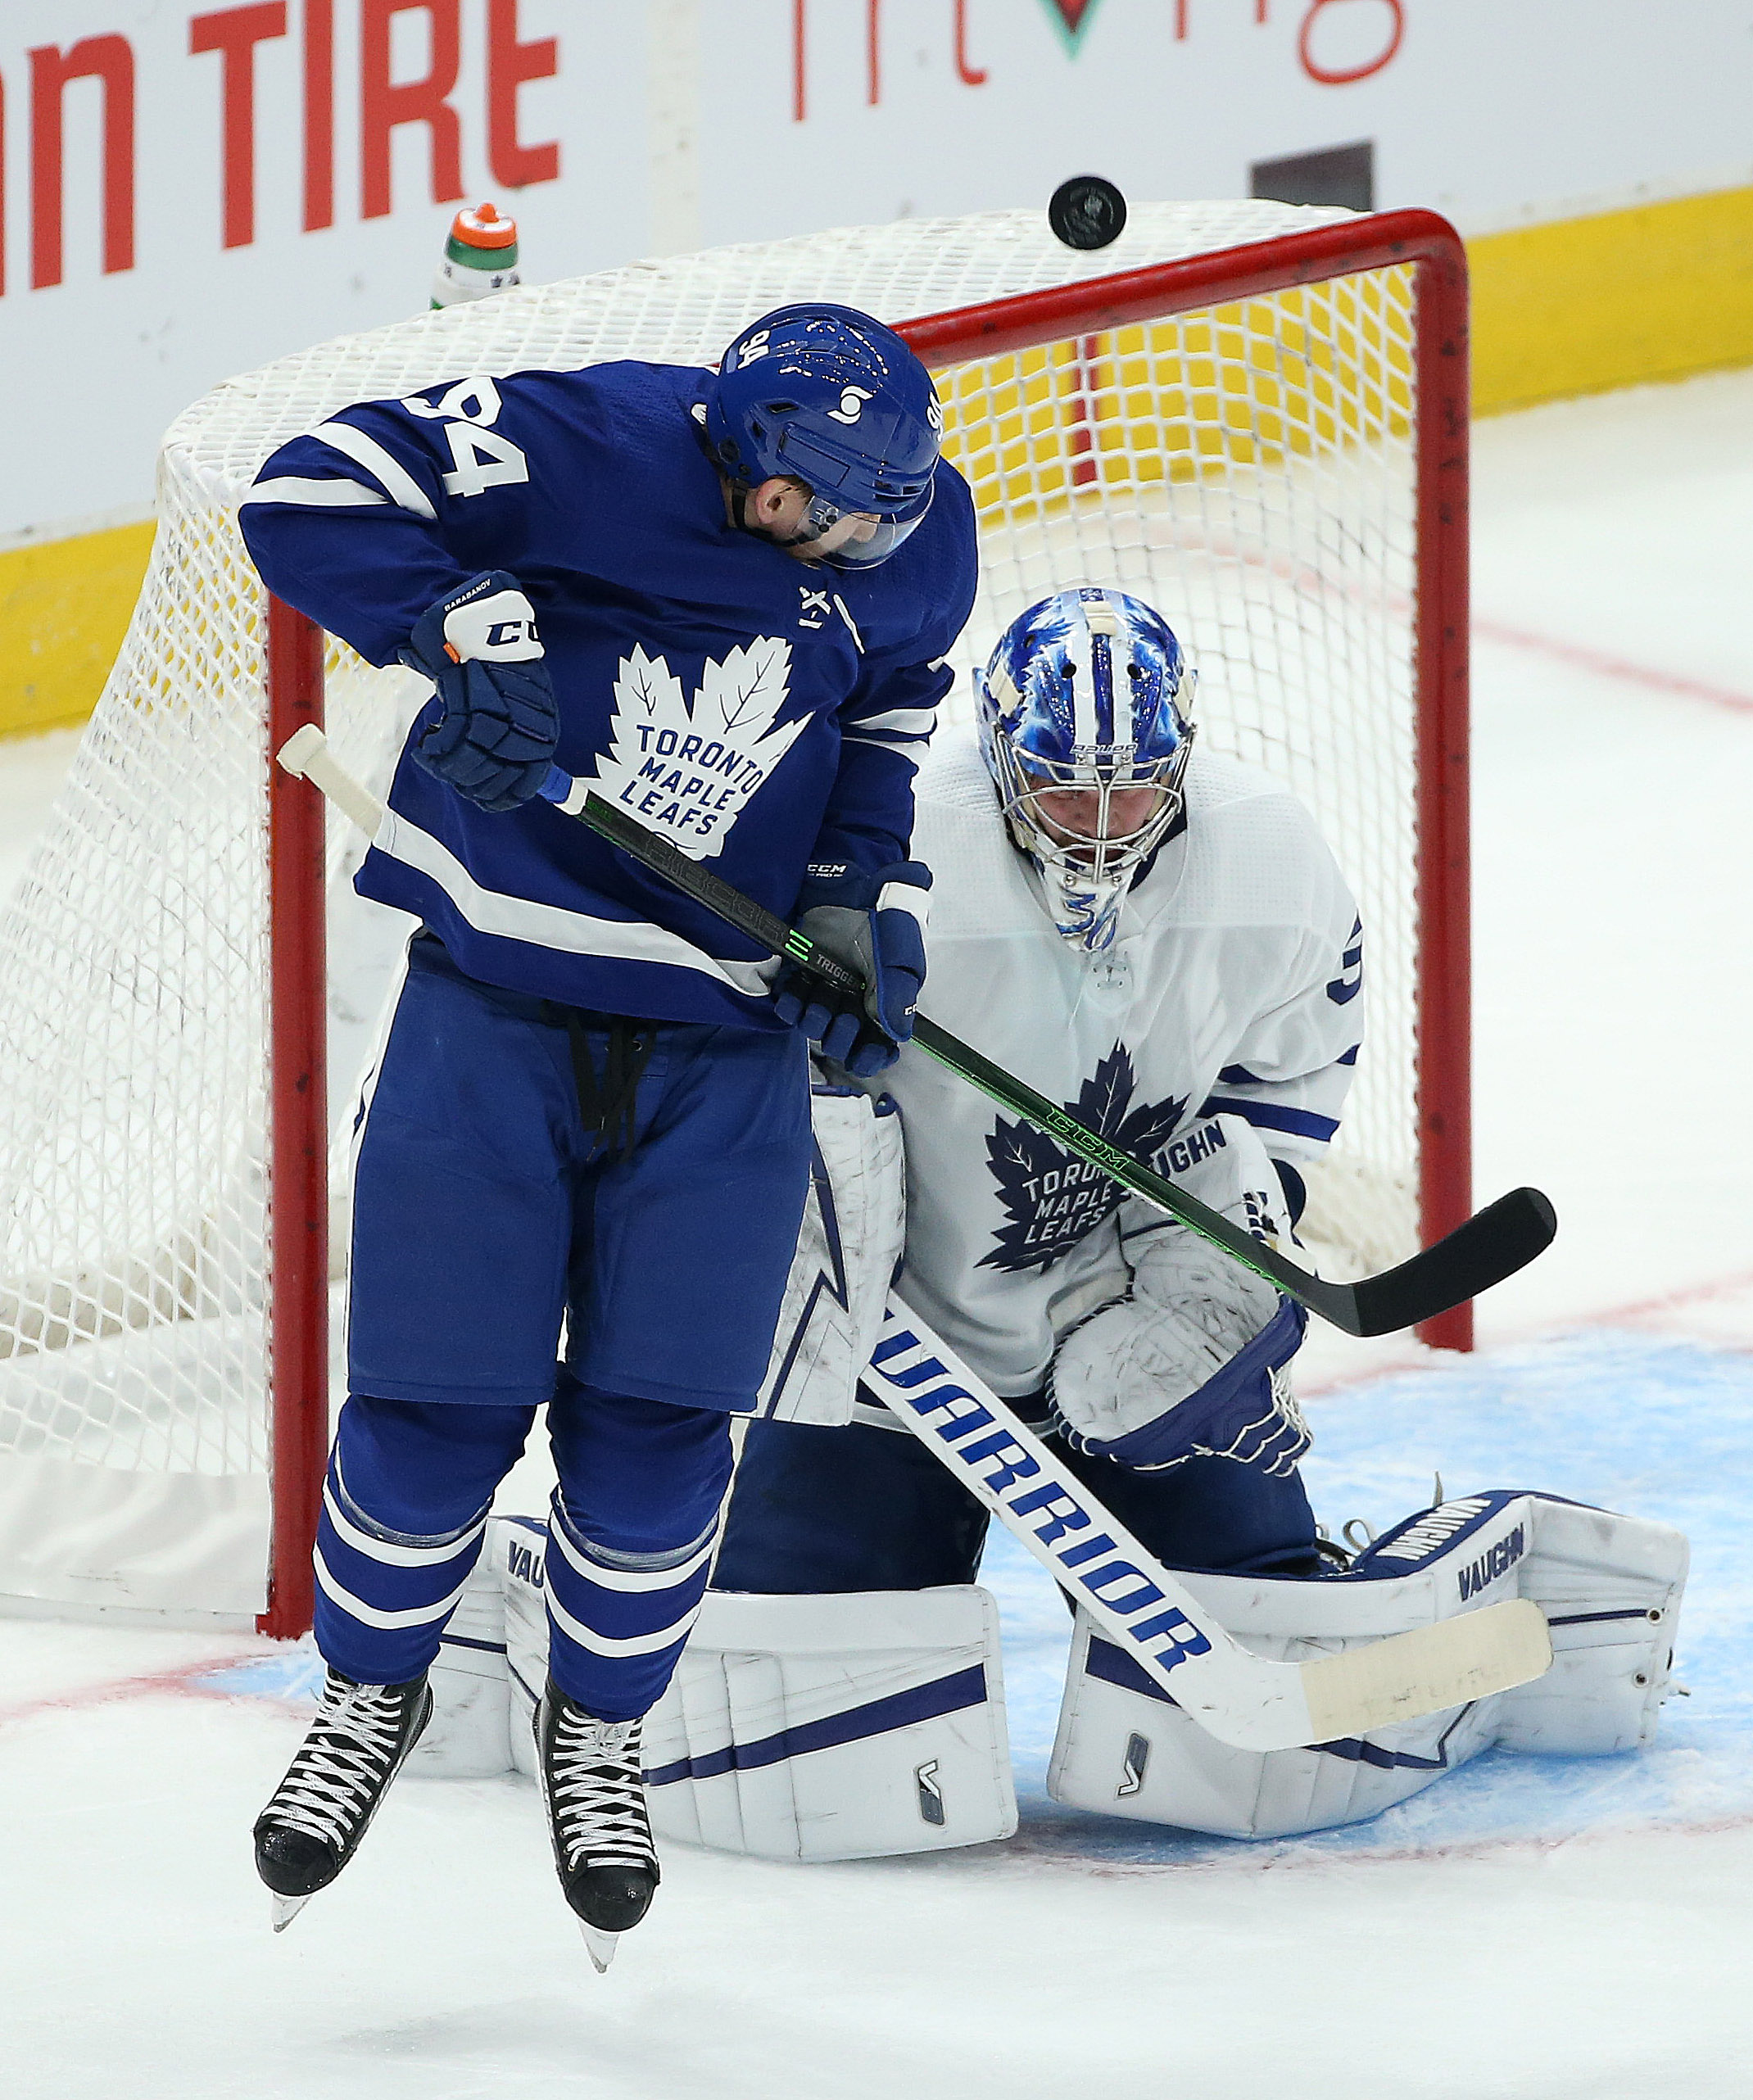 the Toronto Maple Leafs hold their annual Blue versus White inter-squad game